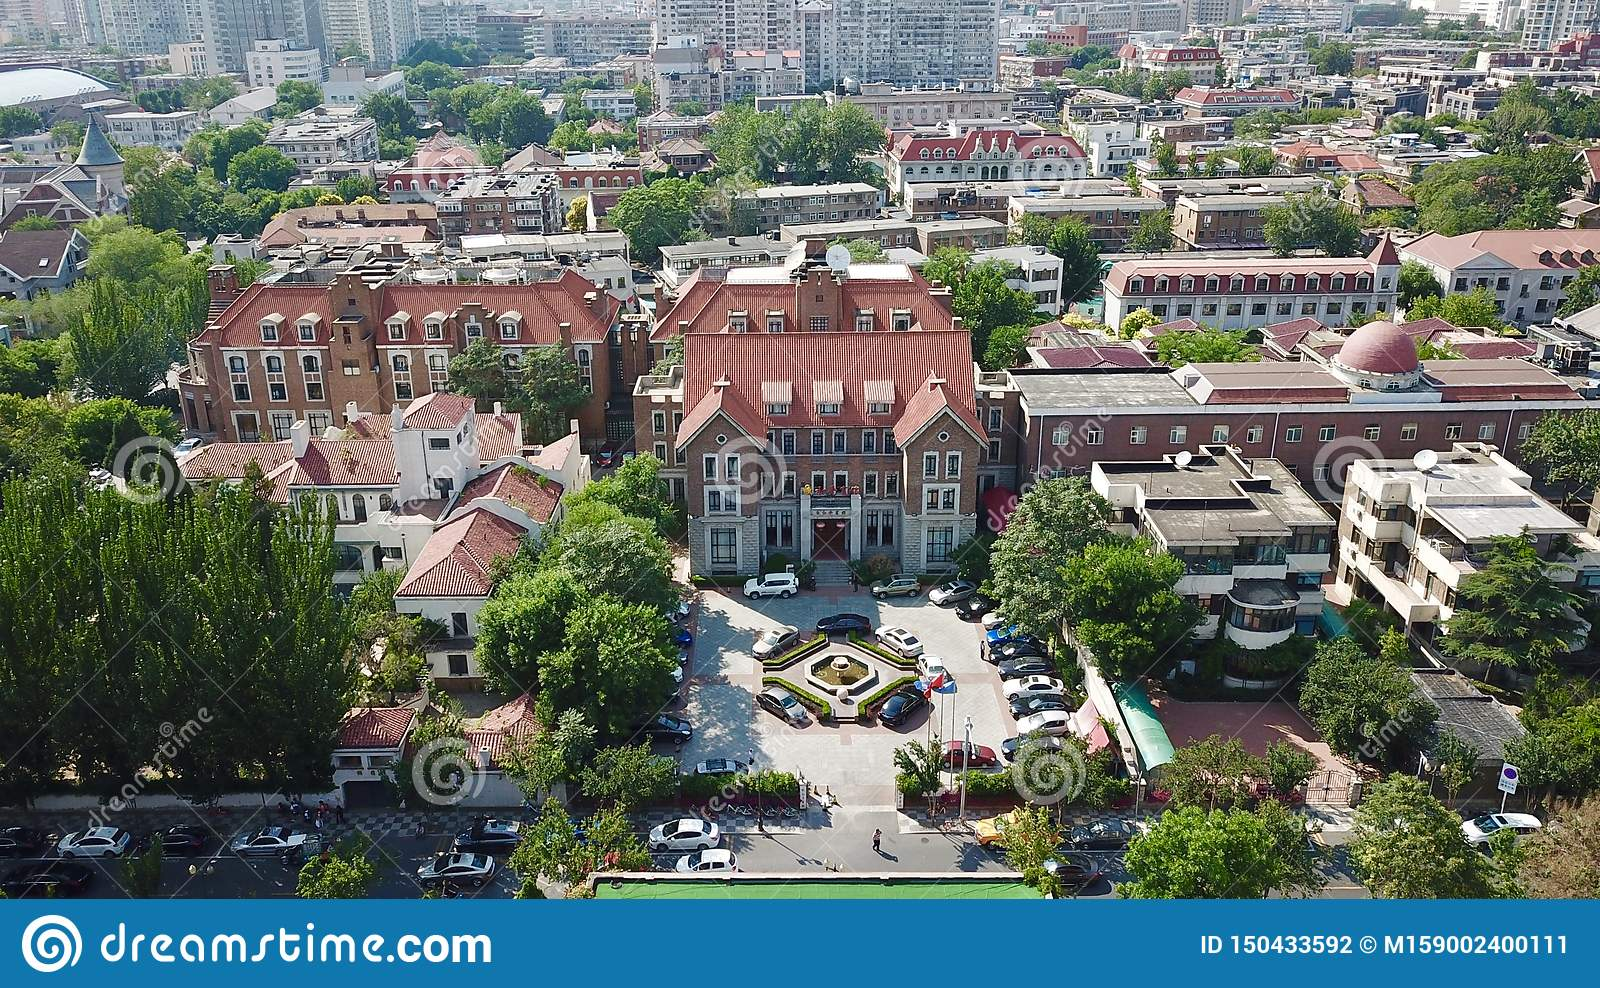 Aerial Scenery in Tianjin